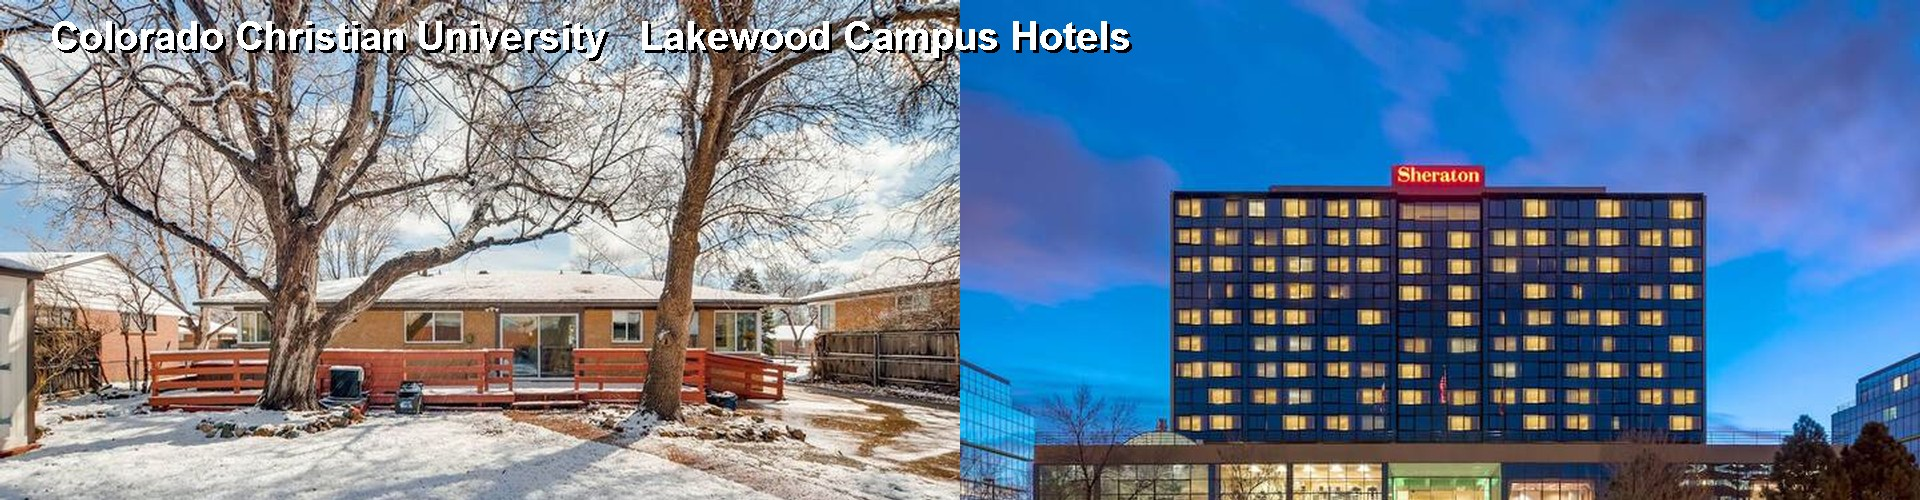 Best Hotels Near Colorado University Lakewood Campus With Mile High Stadium Denver Co